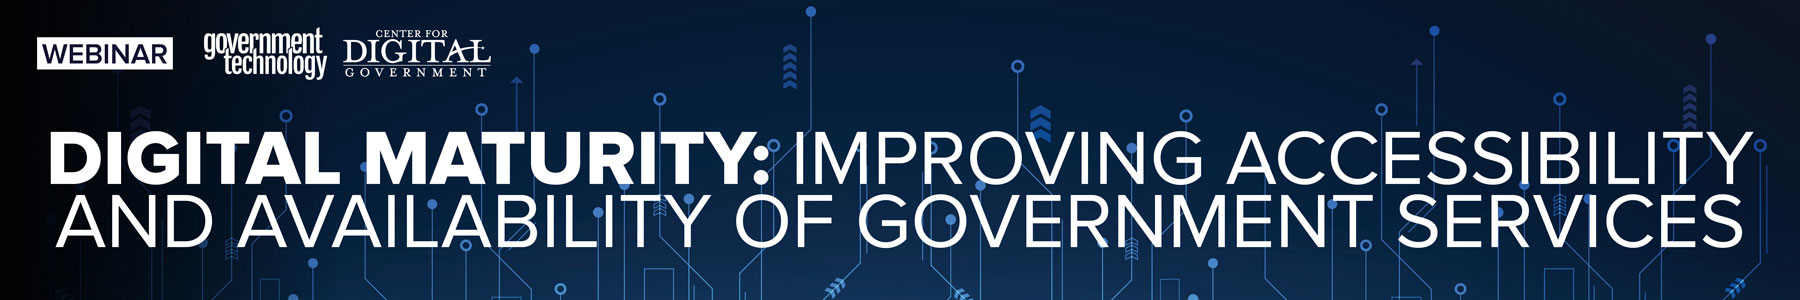 Digital Maturity: Improving Accessibility and Availability of Government Services